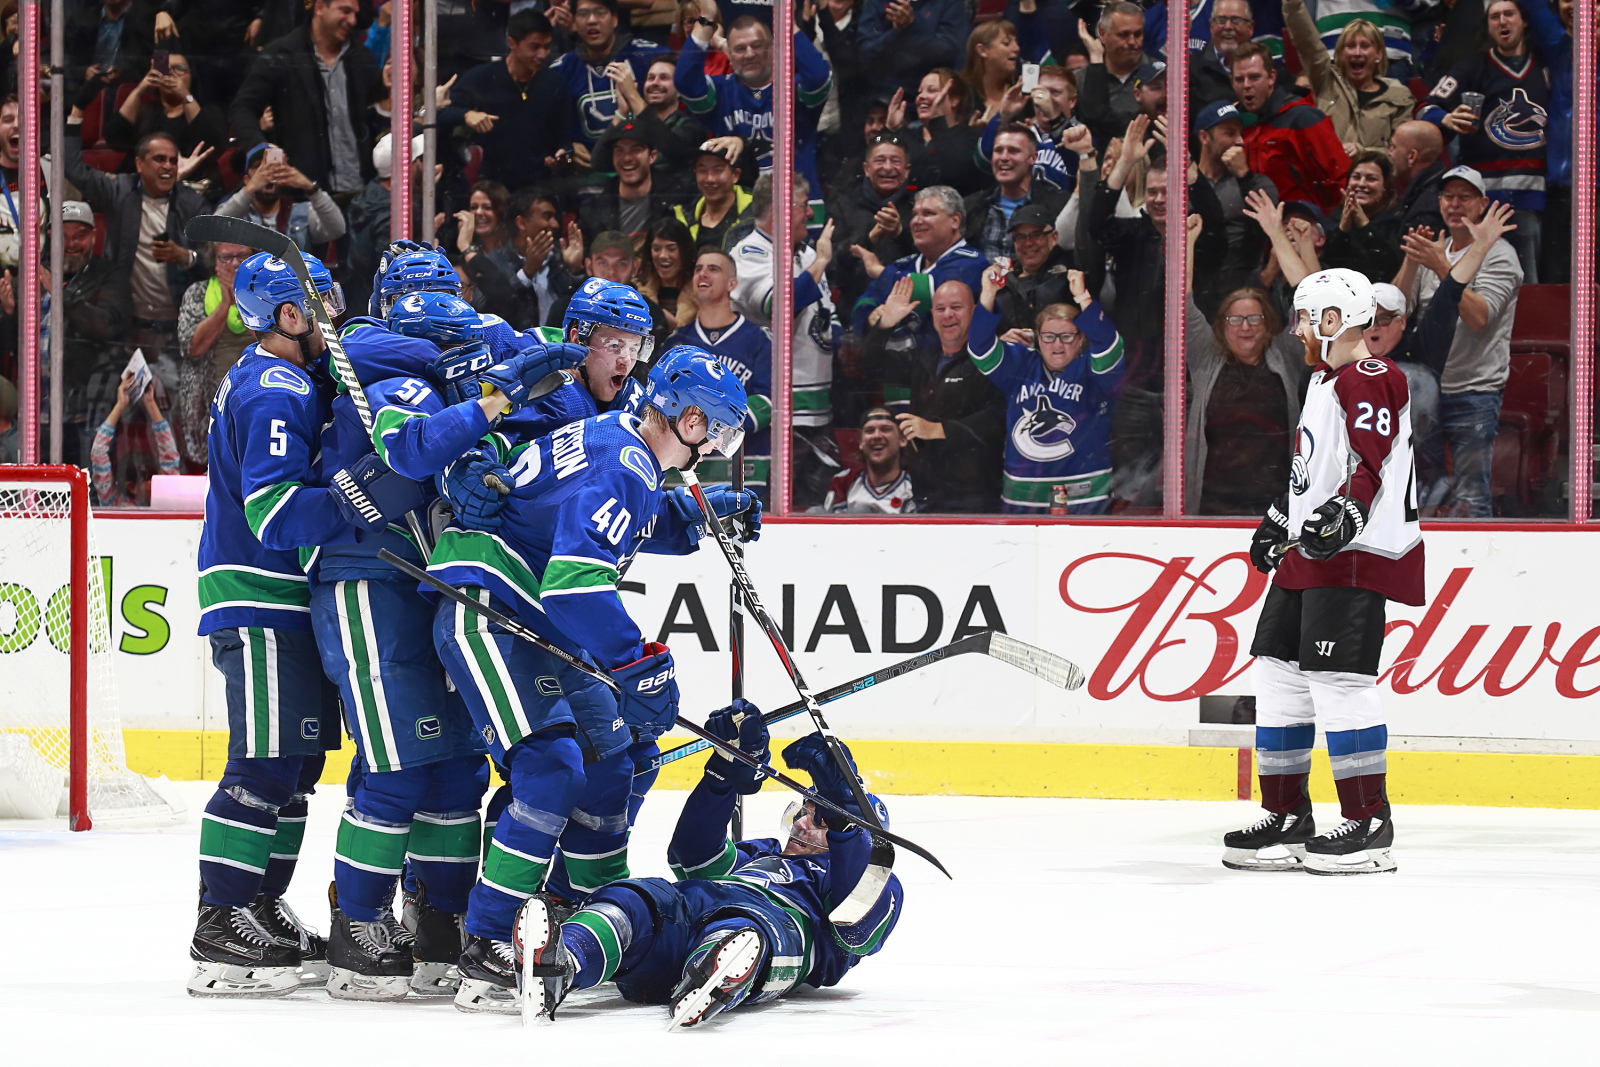 Canucks: 10 things to be proud of and grateful for this year